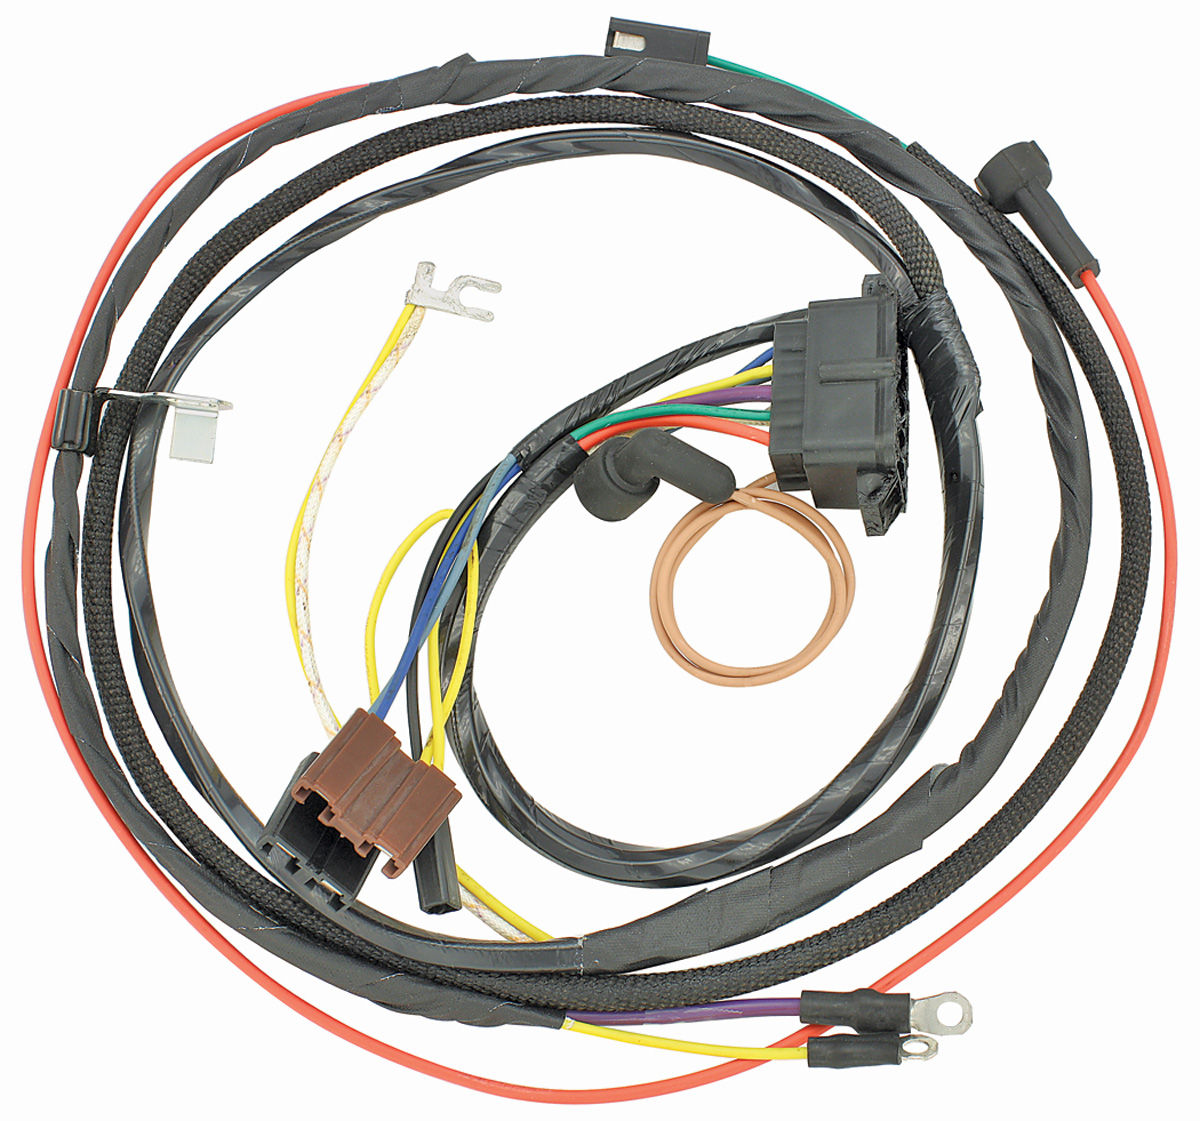 10570 lrg m&h 1967 chevelle engine harness 396 w gauges @ opgi com Chevy Truck Wiring Harness at gsmportal.co